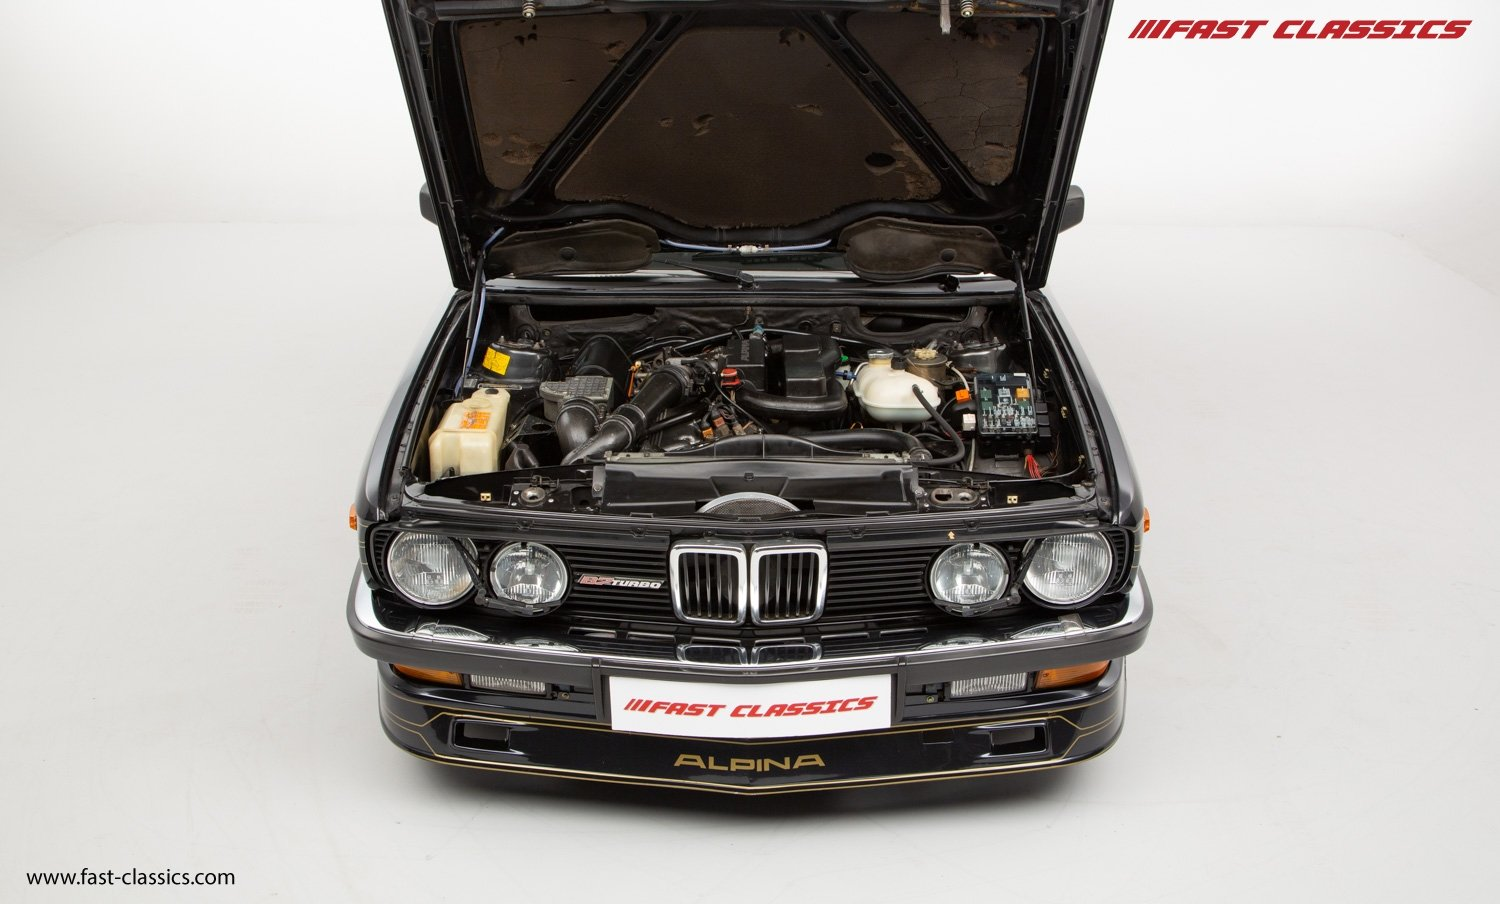 1986 ALPINA B7 TURBO/1 // 1 OF 42 HIGH POWER CATALYST CARS  For Sale (picture 19 of 24)